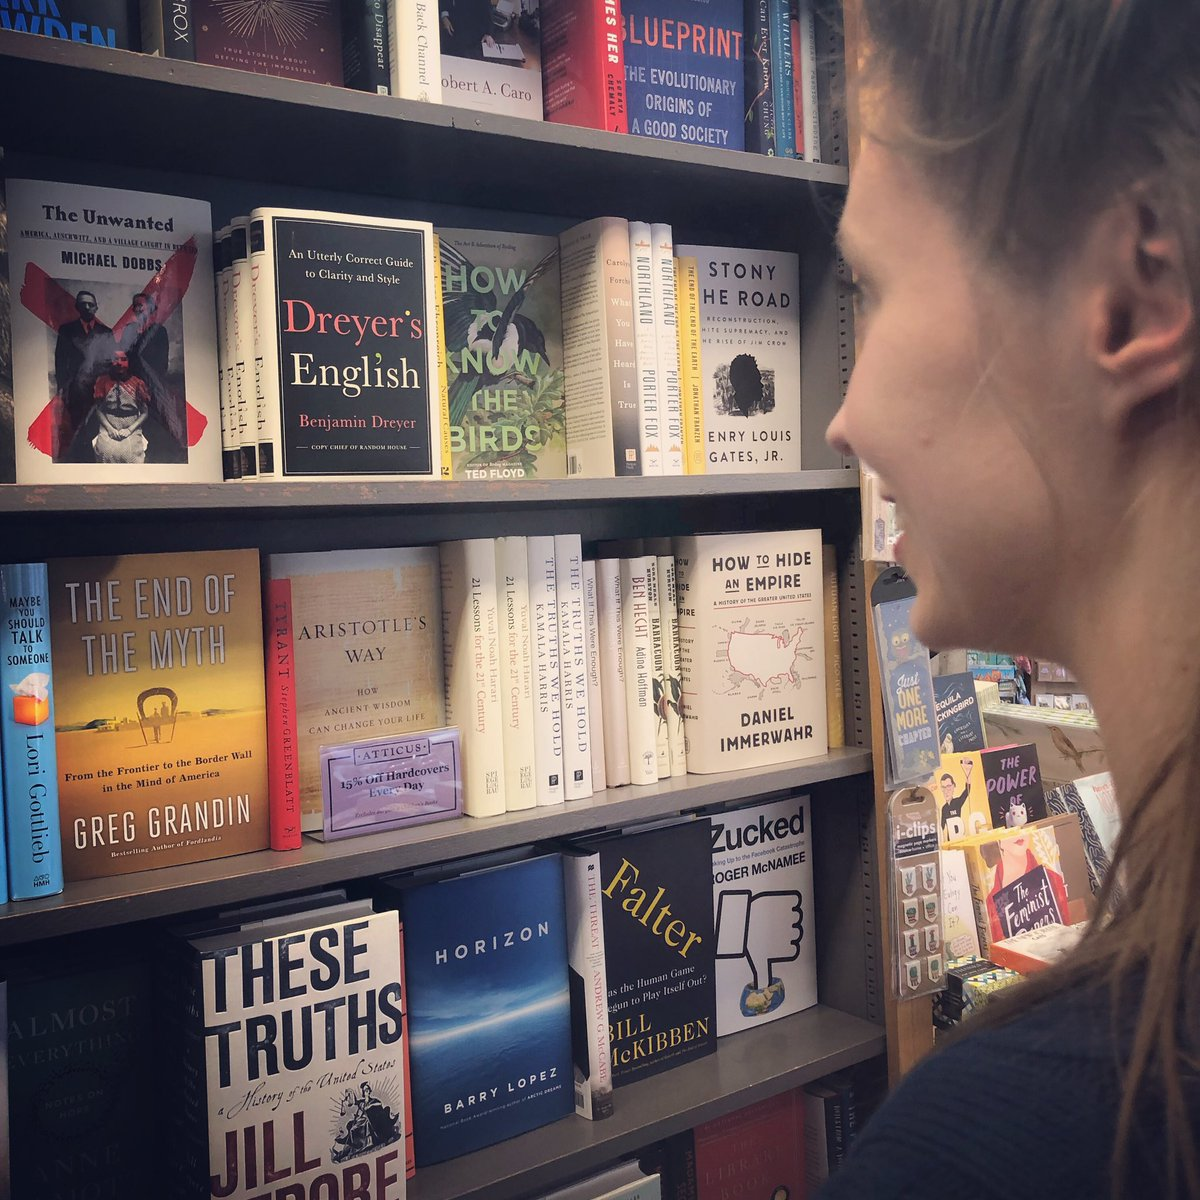 """Book buying be like: """"Sir, please give me one if everything in this bookcase. K, thanks!"""" #toomanygoodbooks #cantdecide <br>http://pic.twitter.com/2S69wAlAn5"""